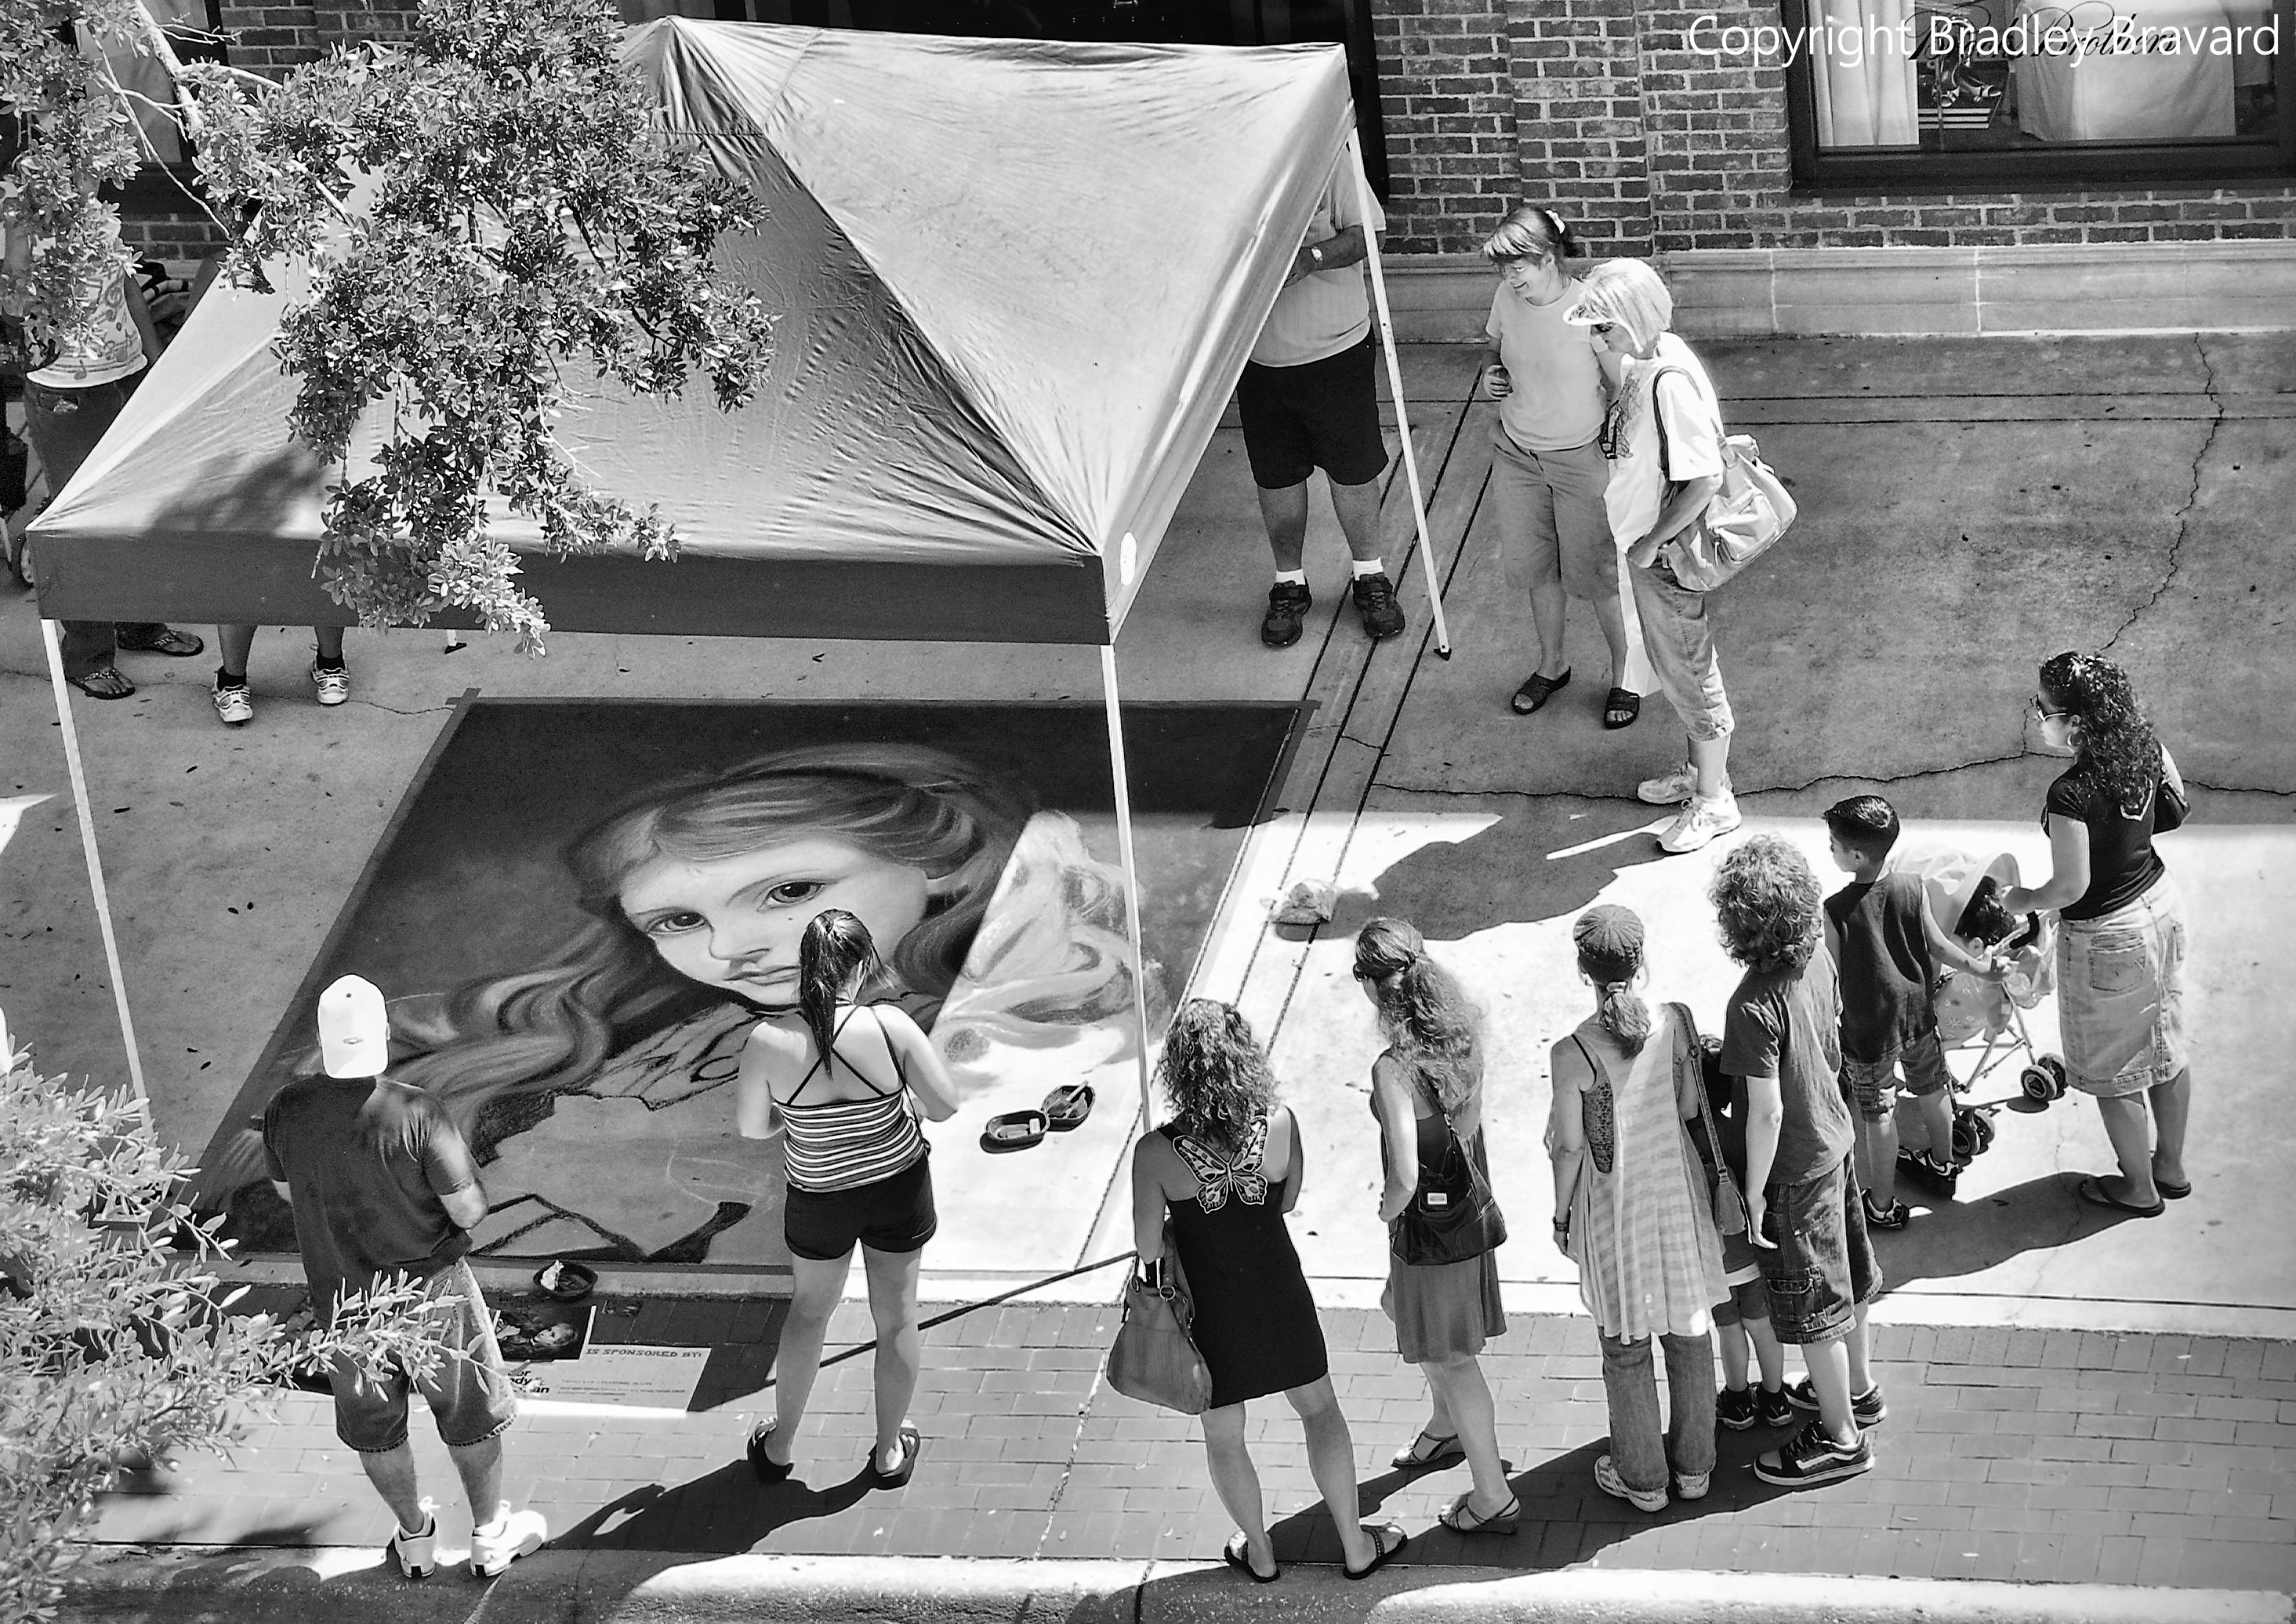 Black and white photo of sidewalk chalk mural observed by group of people